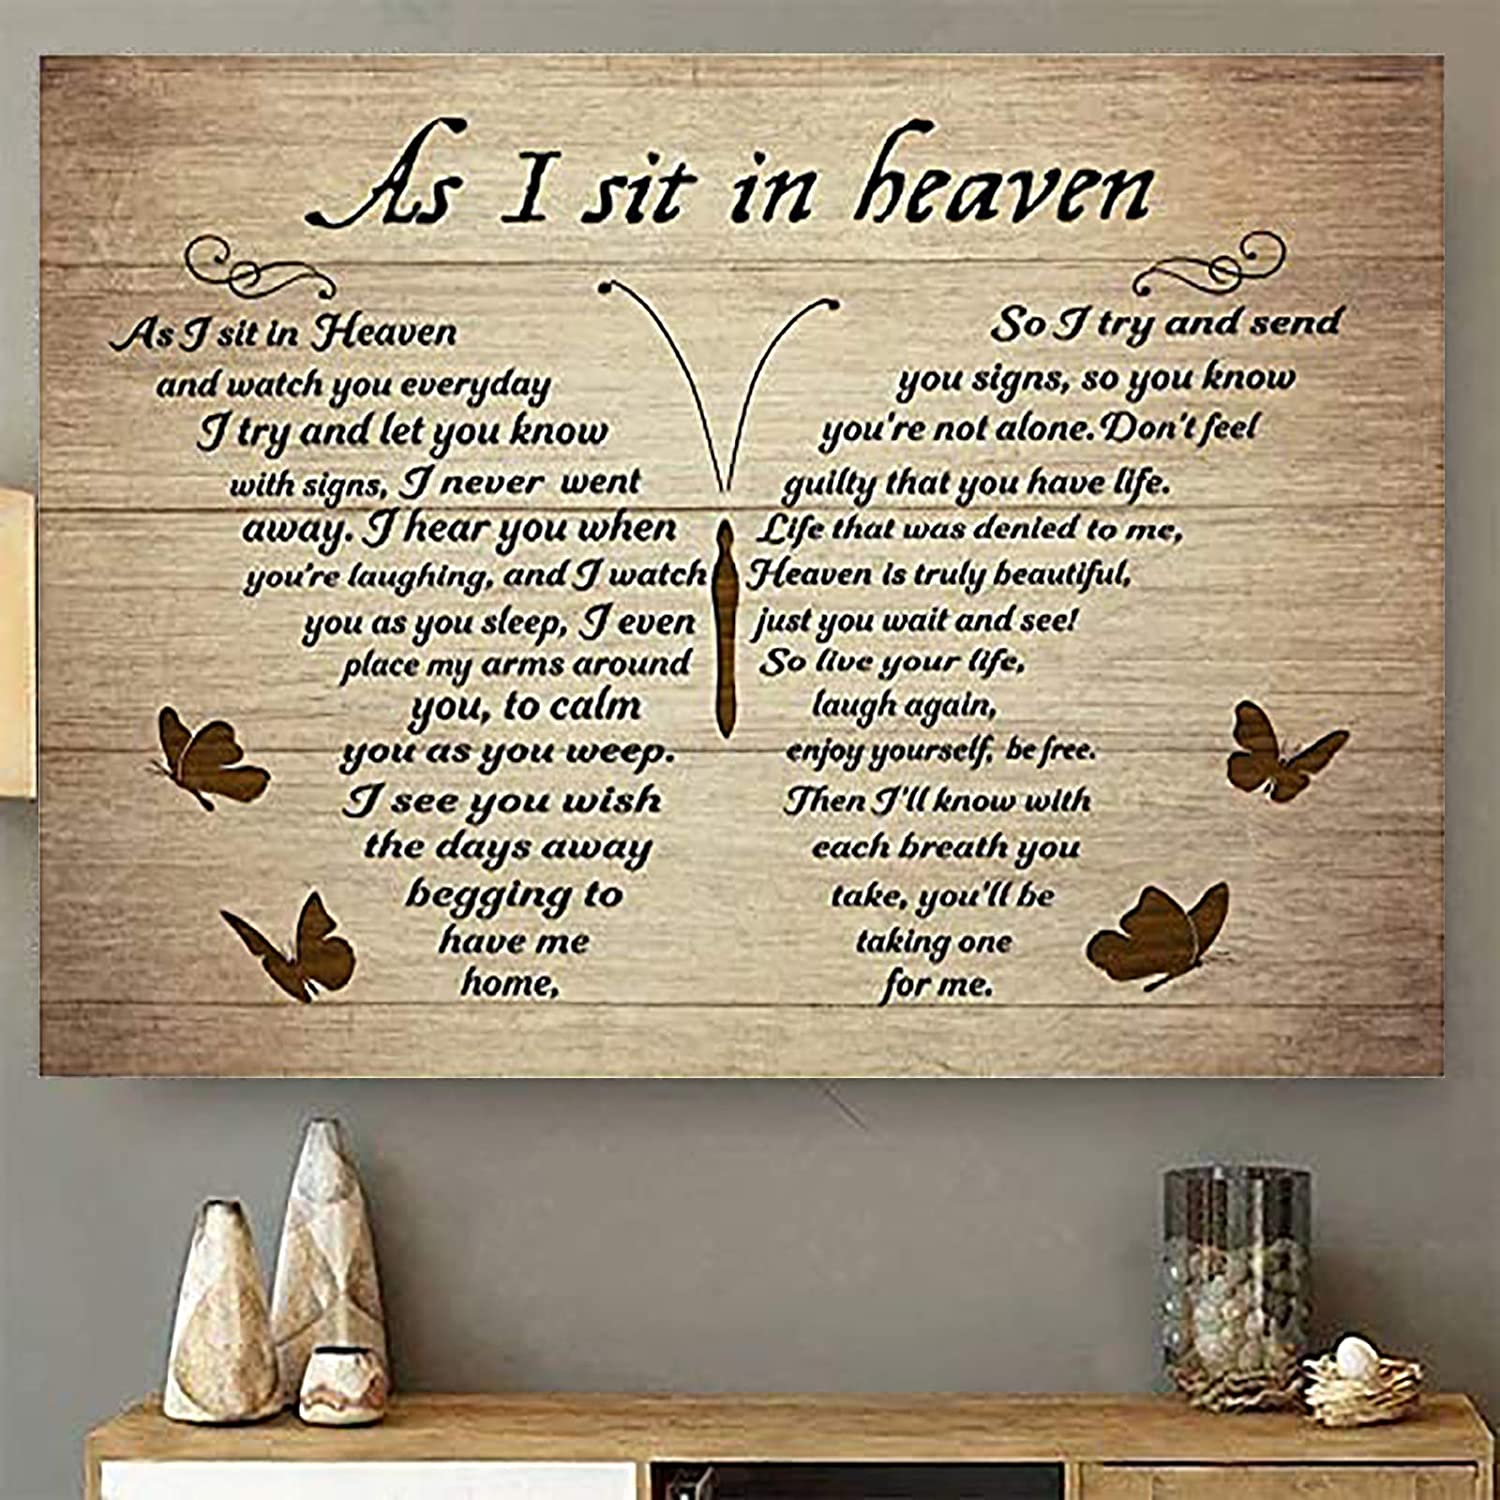 Butterflies Vintage Canvas Wall Art Canvas As I Sit in Heaven and Watch You Everyday Poem Painting on Canvas Wooden Background Rustic Inspirational Quotes Wall Art Paintings Quotes Poem Room Decoration For Living Room Kitch Wall Hanging Paintings No Frame (16